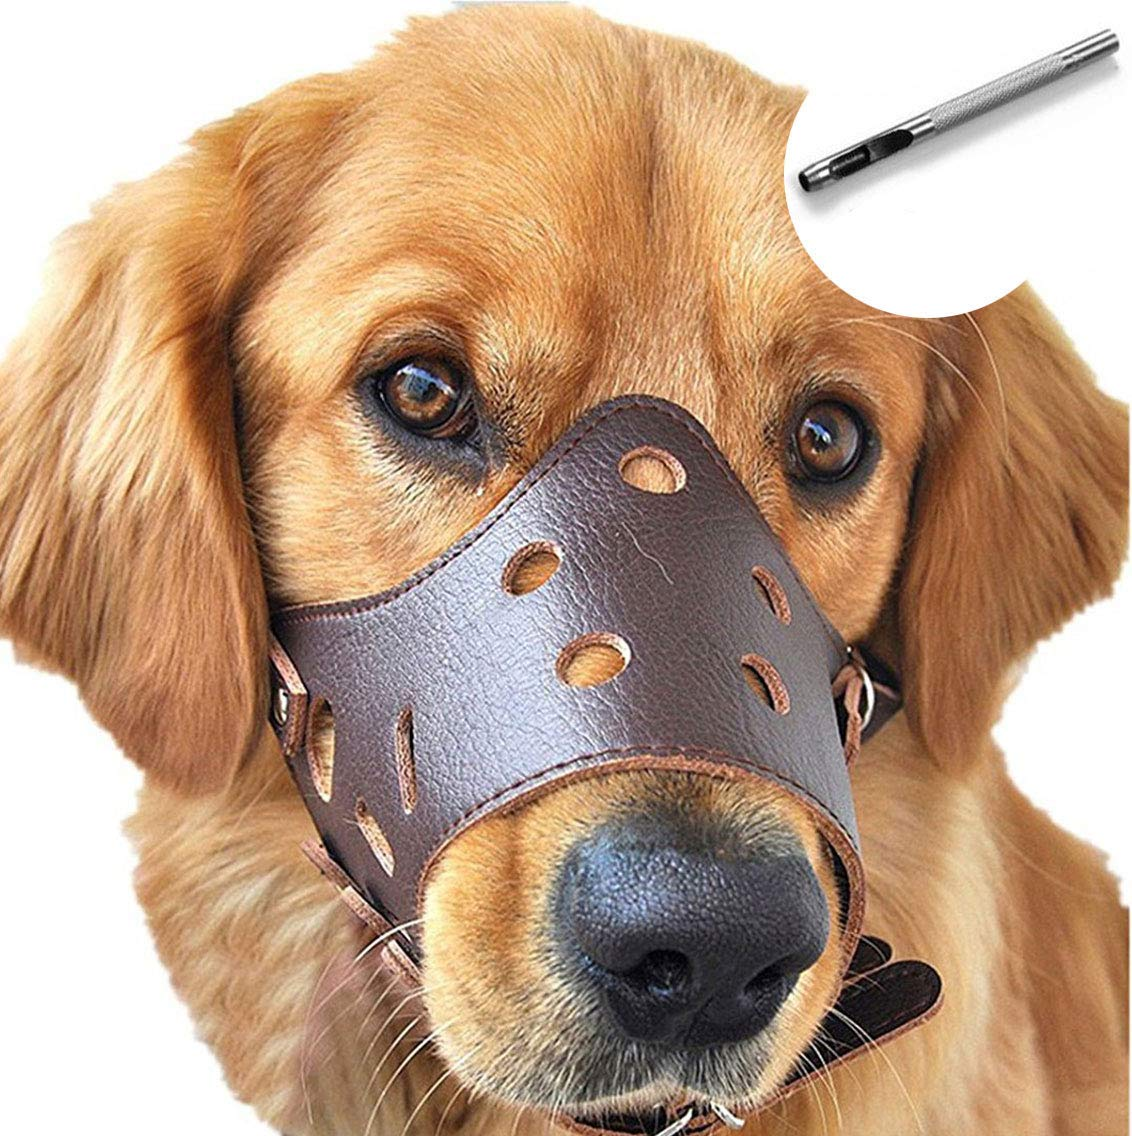 (L, Brown) Dog Muzzle Leather, Comfort Secure Anti-barking Muzzles for Dog, Breathable and Adjustable, Allows Dringking and Eating, Used with Collars